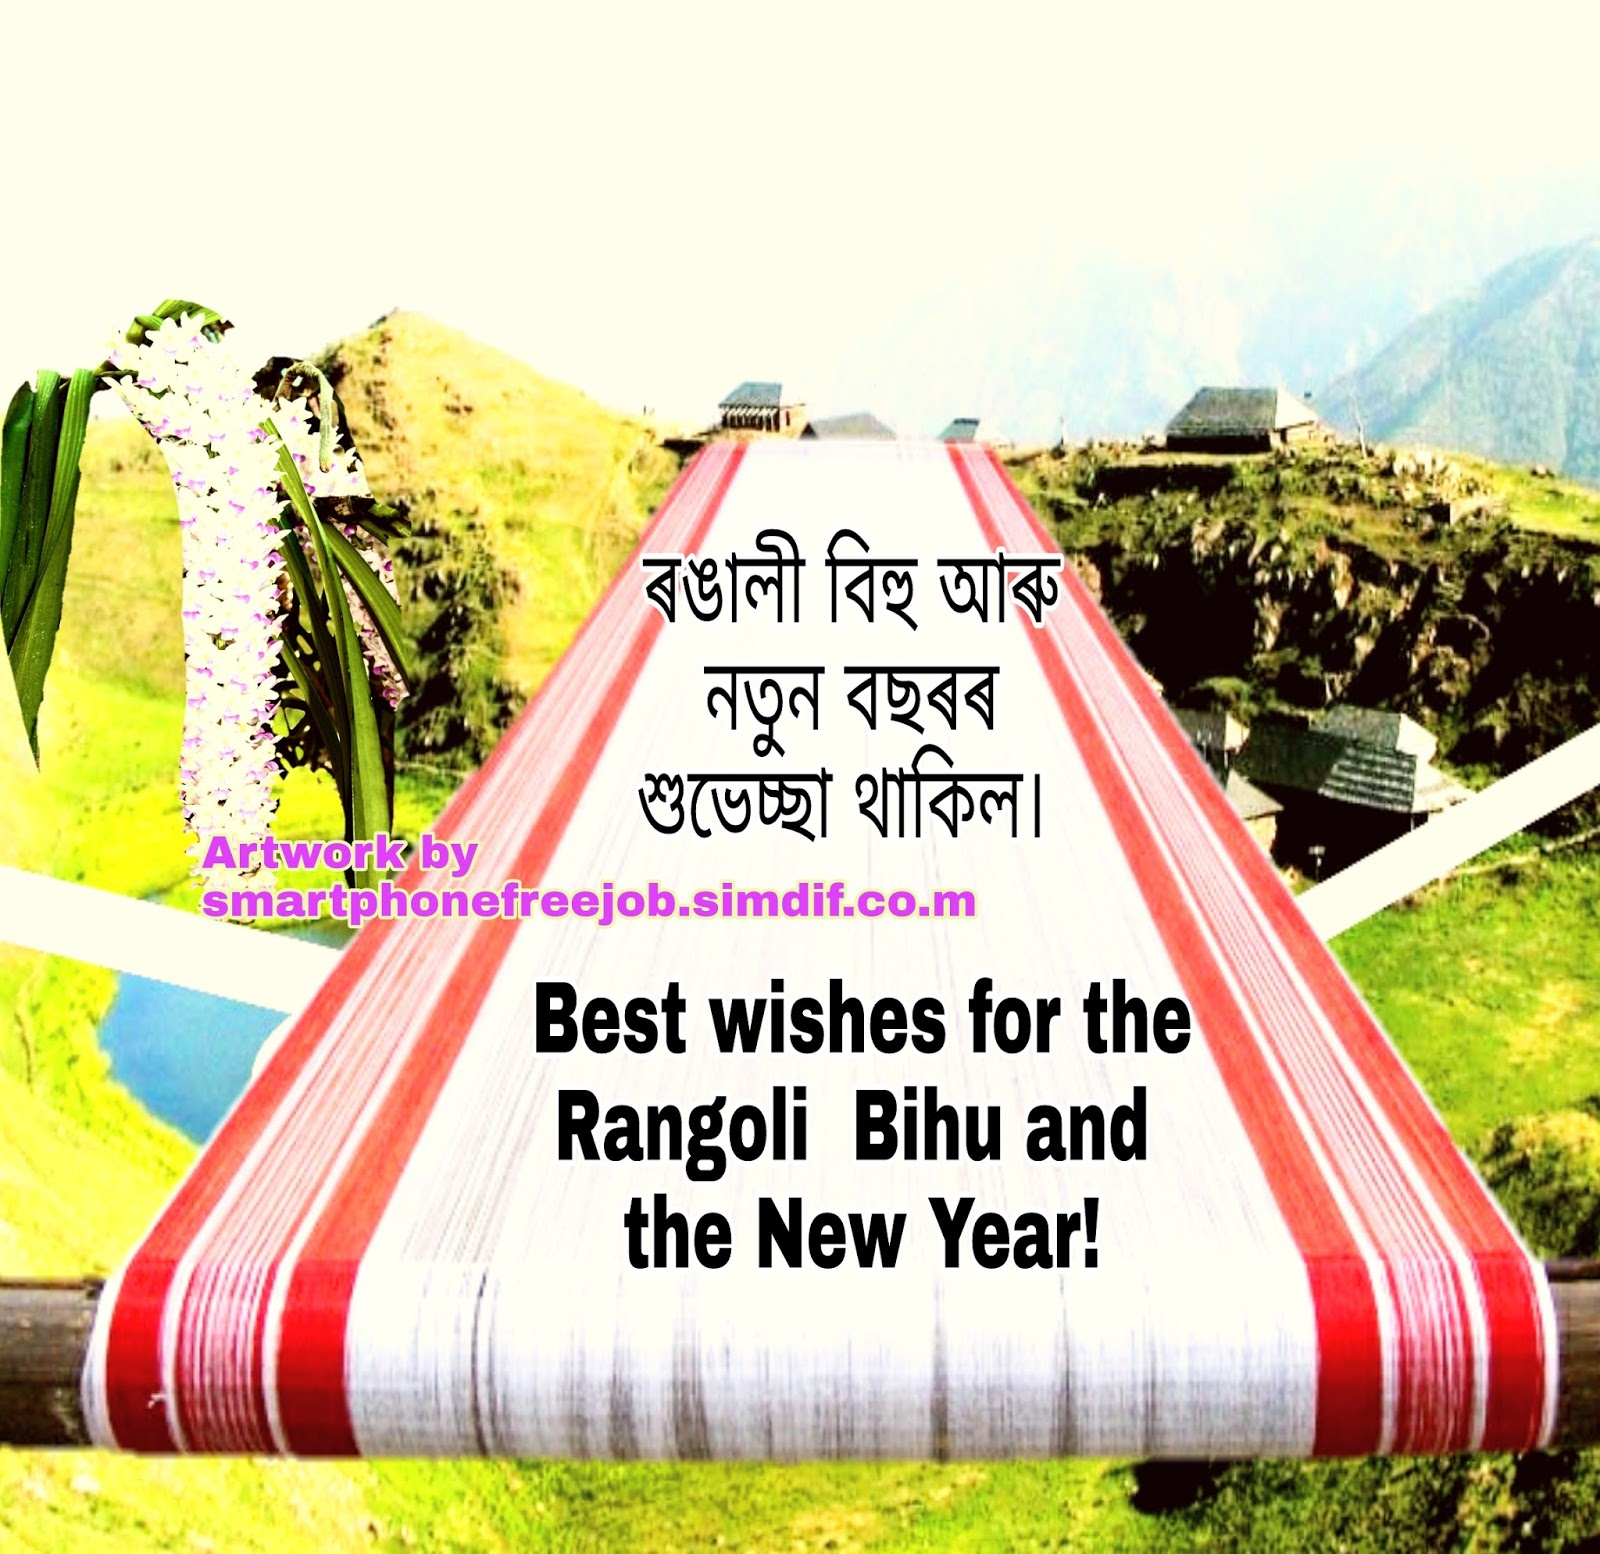 Rangali Bihu Sms And Greetings 2018